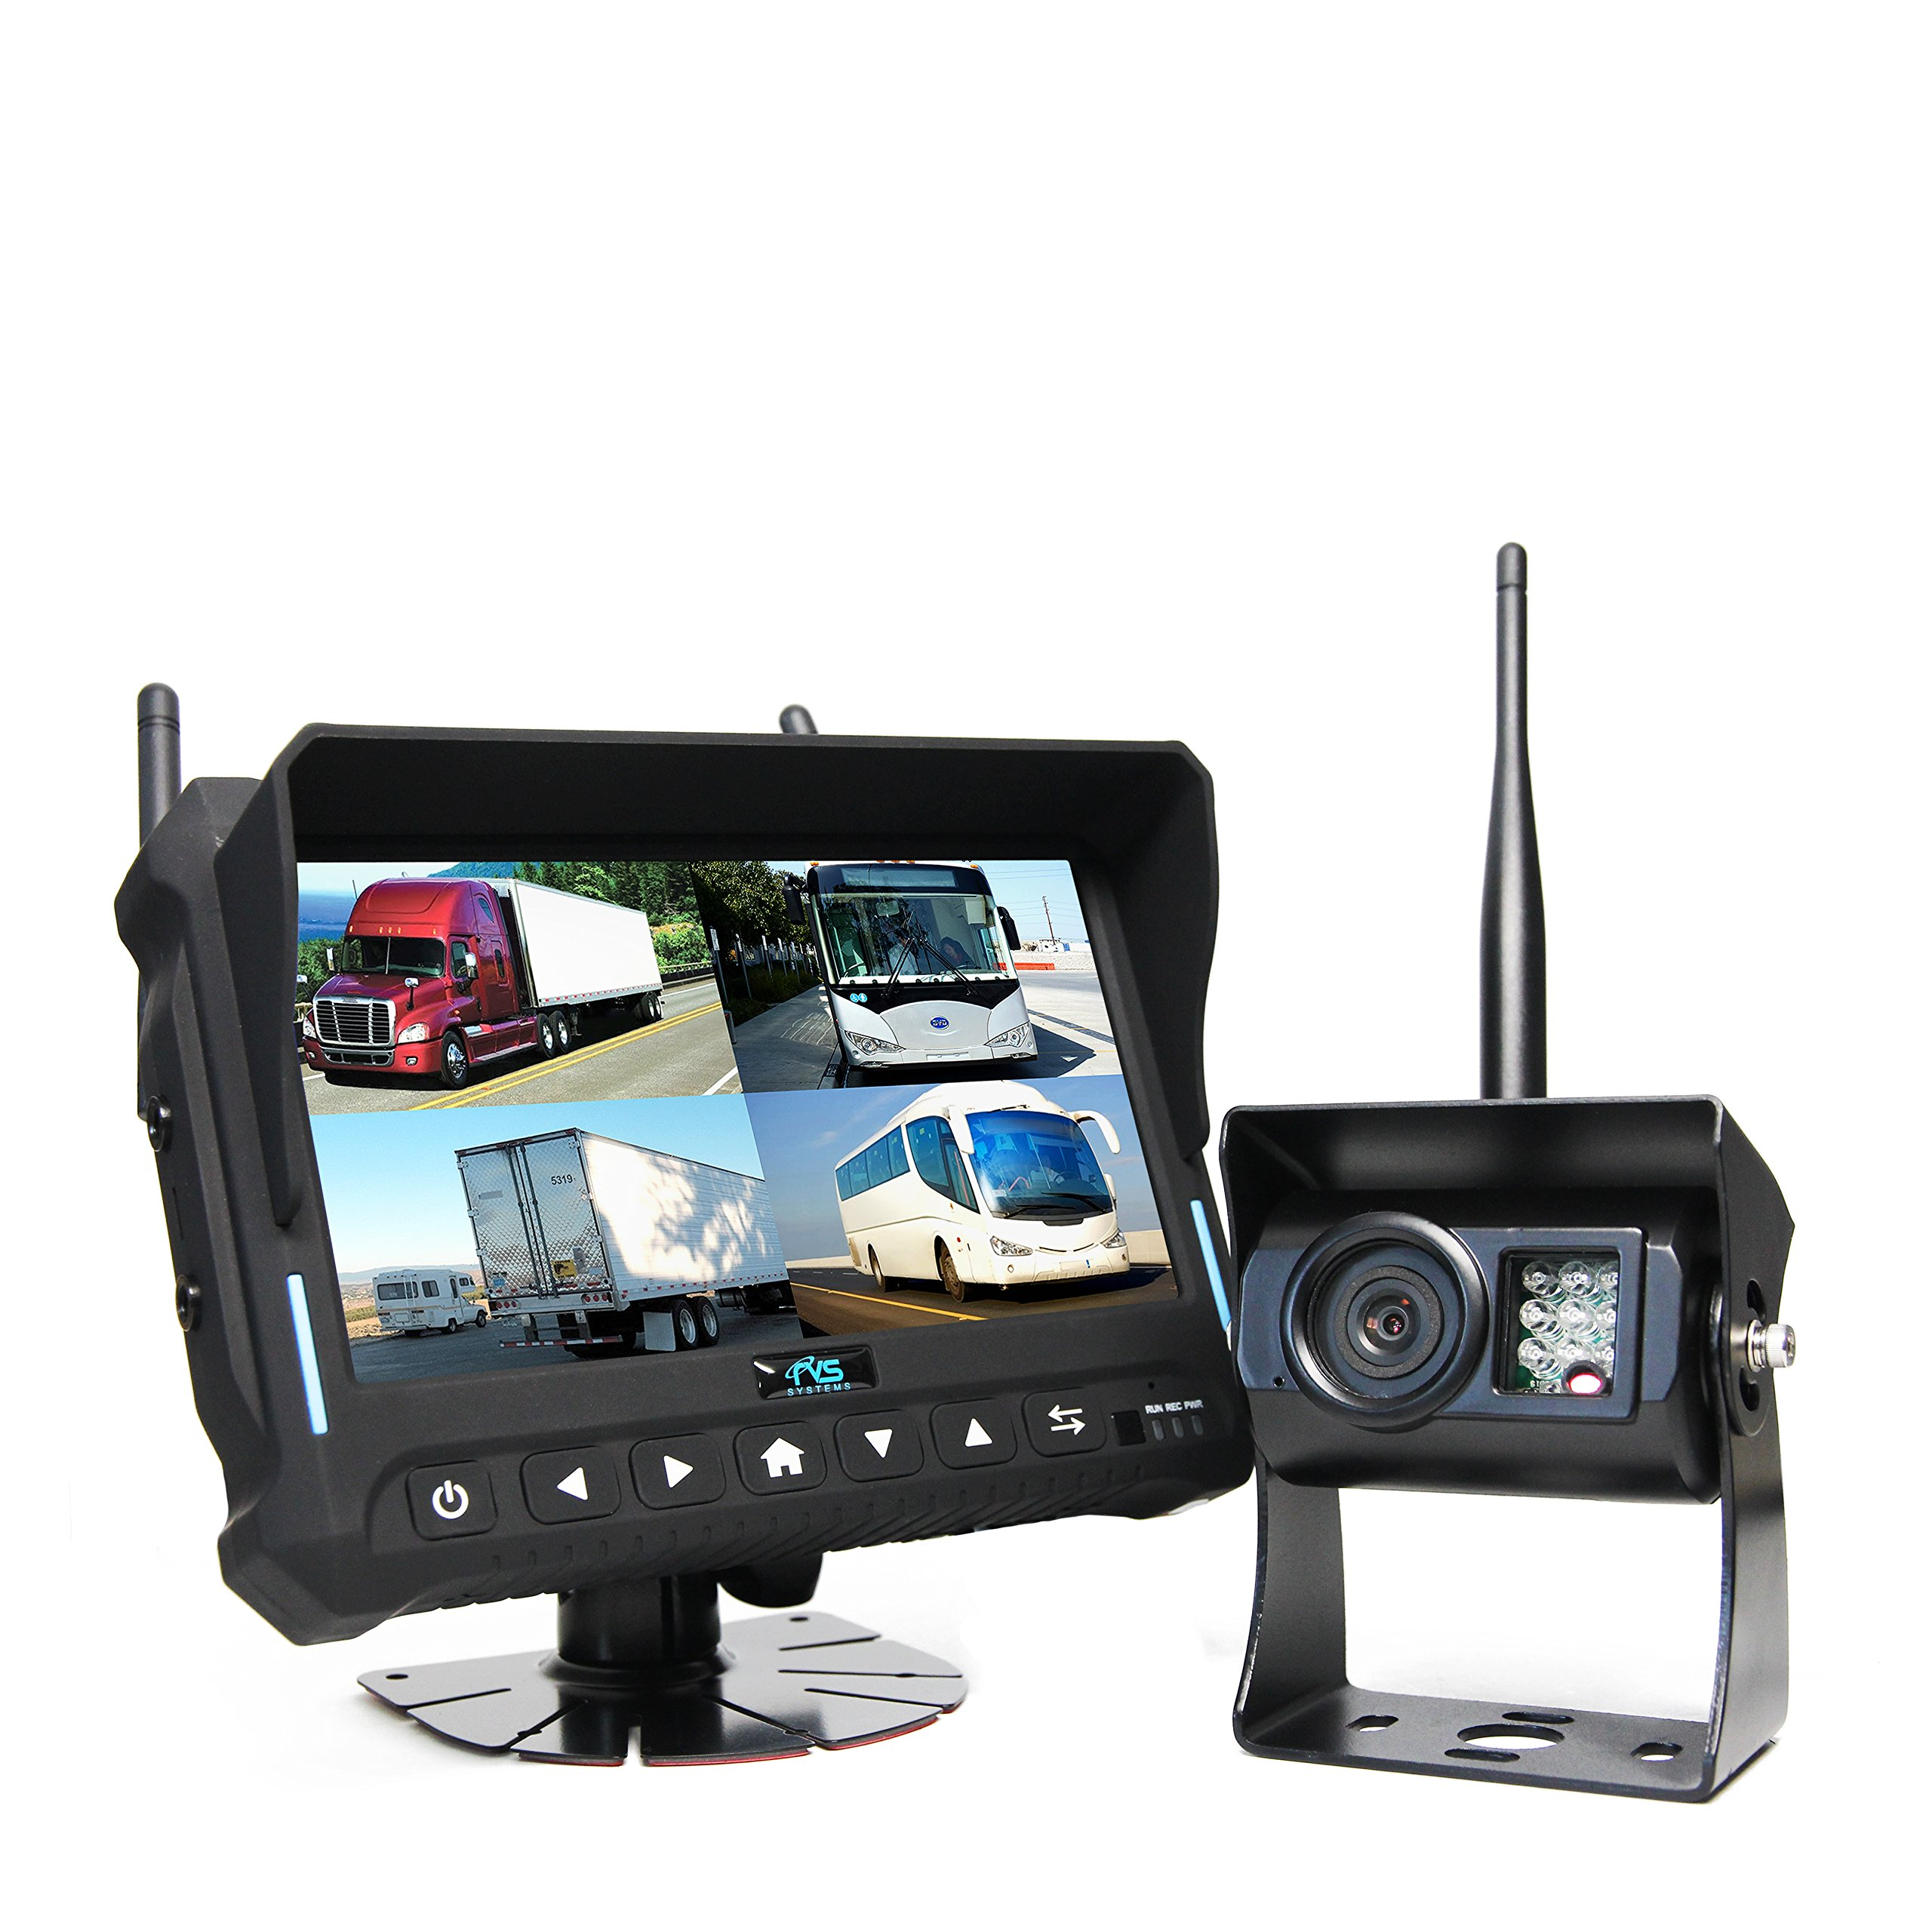 Wireless Backup Camera System (RVS-4CAM) - 7'' Quad View Display with Built-in DVR by Rear View Safety